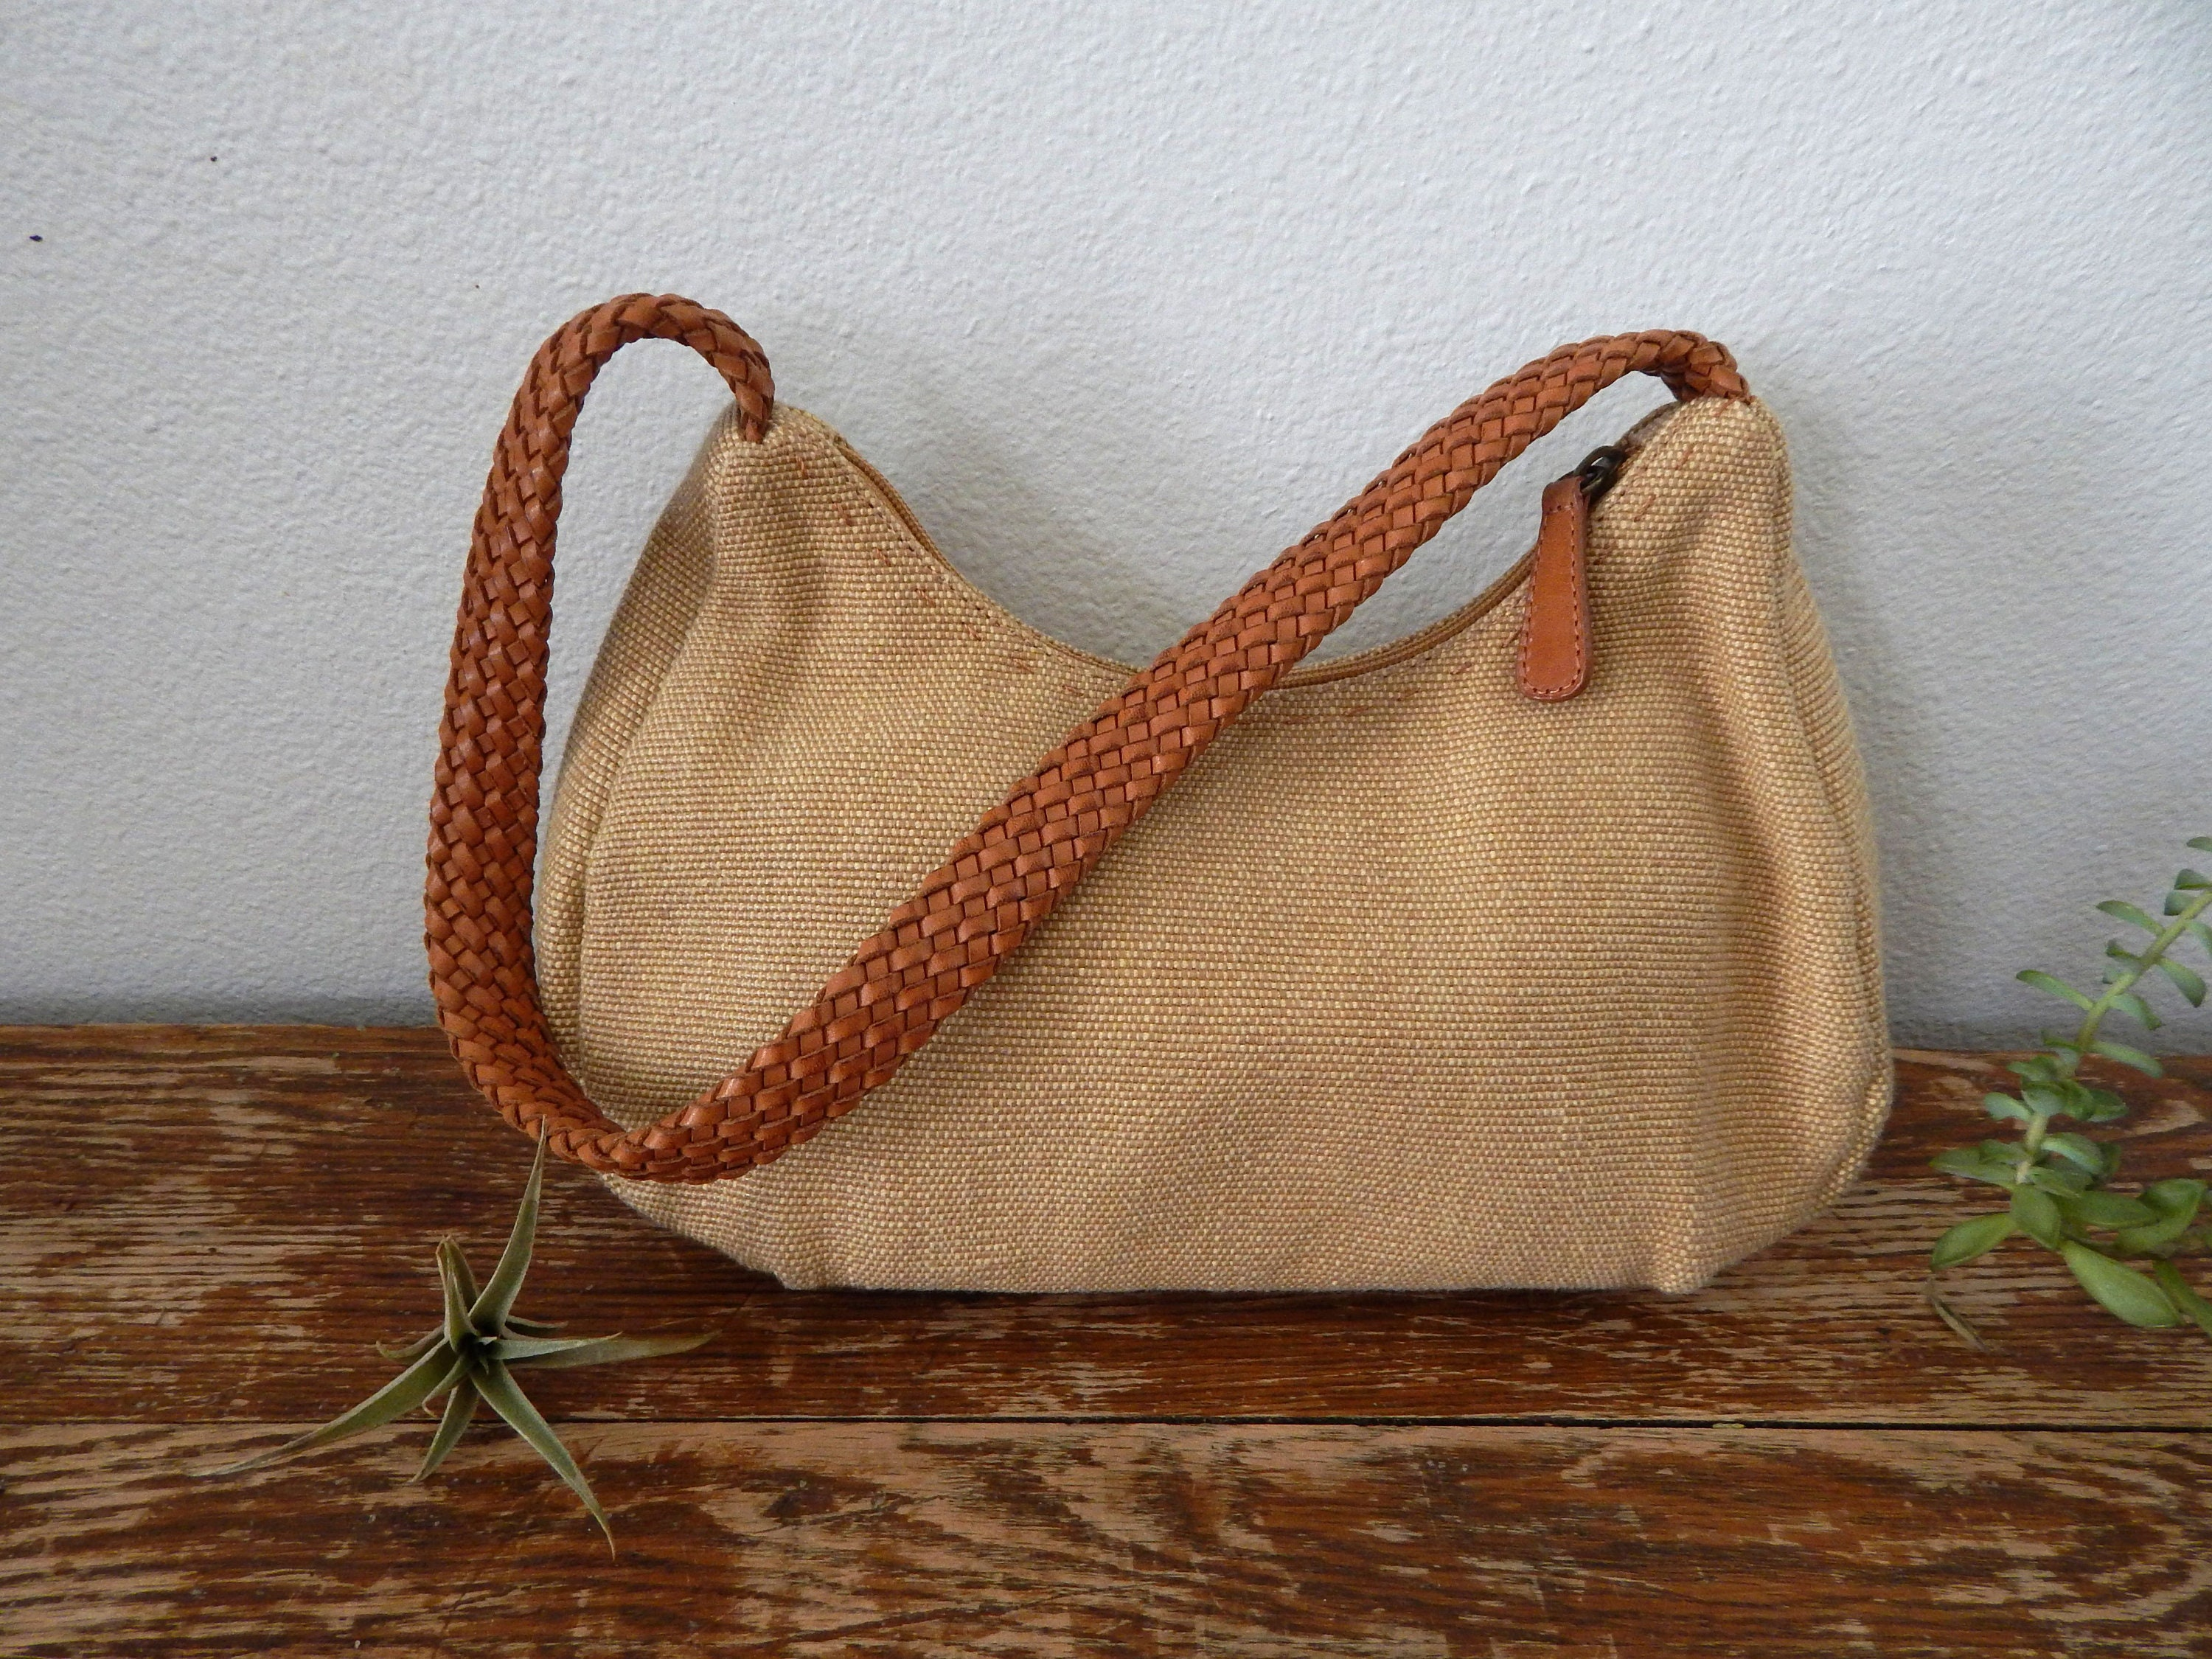 Vintage 90s FOSSIL Small Tan Canvas Hobo Shoulder Handbag with  2943a945463ac